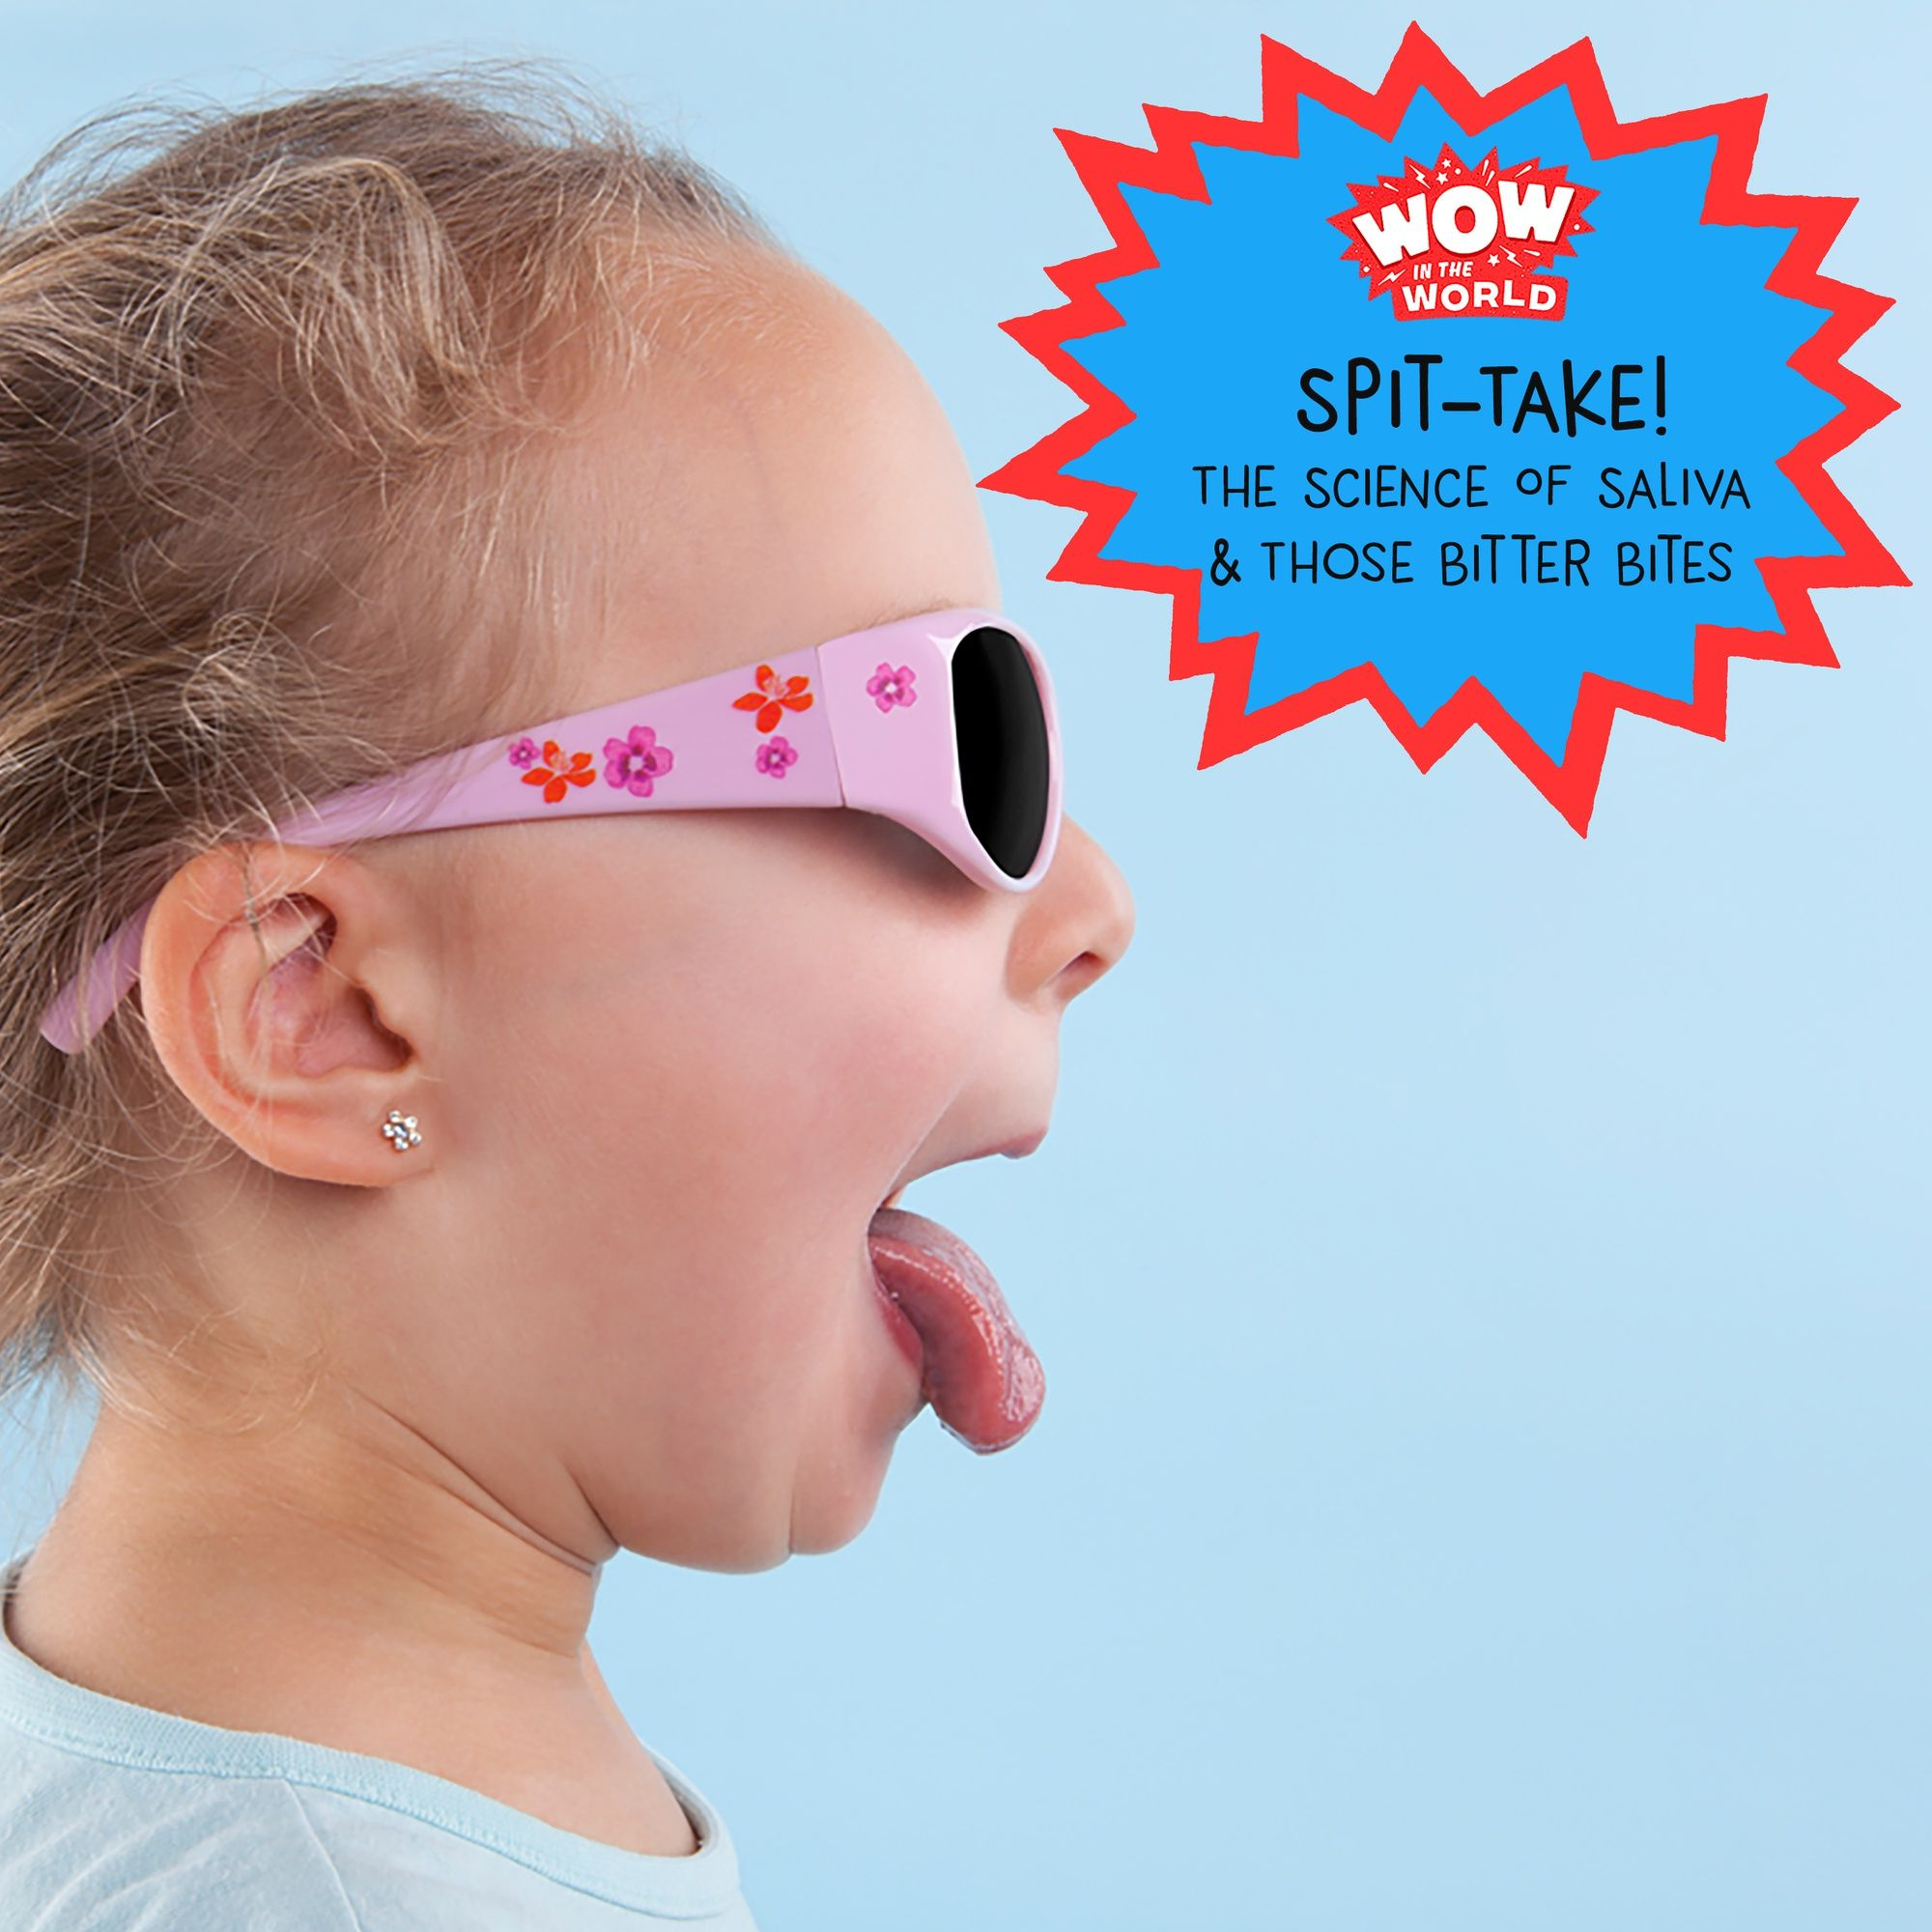 Spit-Take! The Science Of Saliva And Those Bitter Bites (encore)